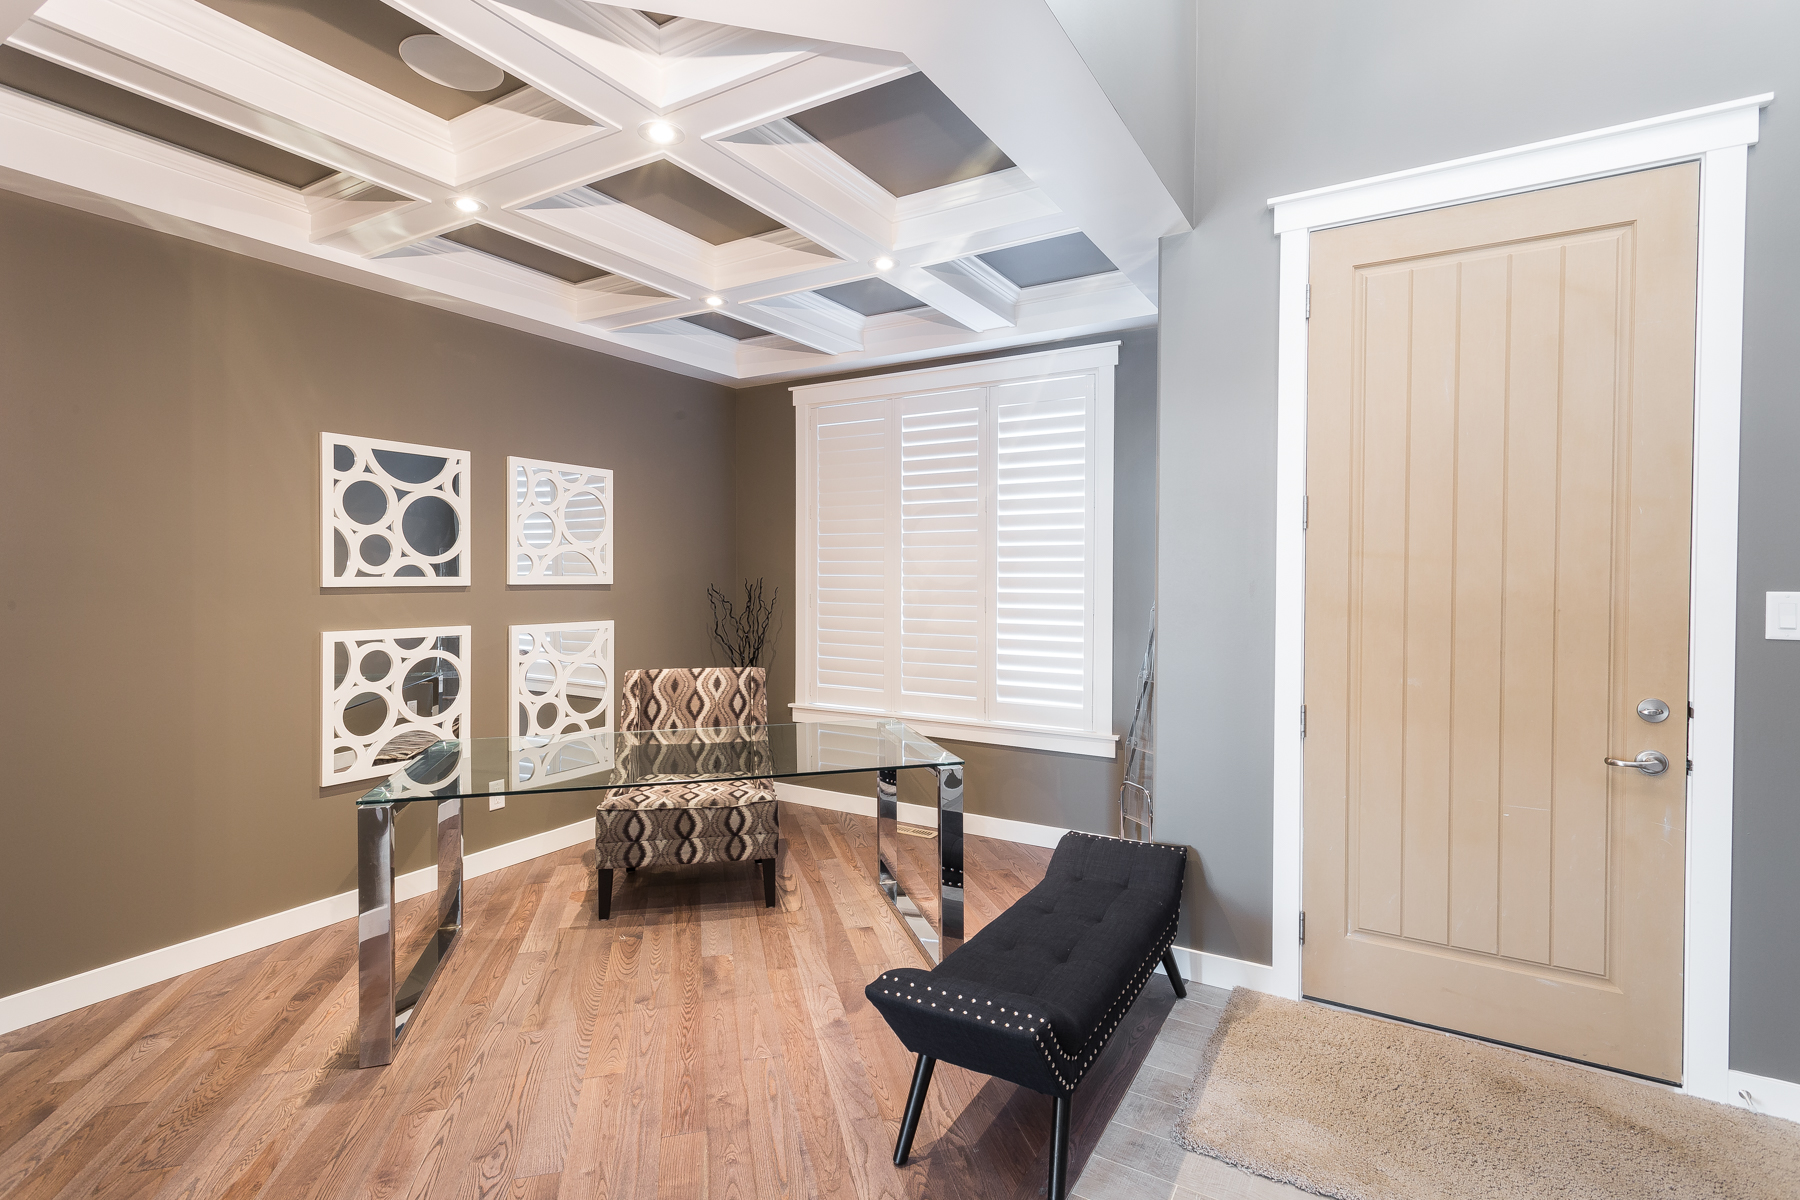 Motherwell Drive - Hatched ceiling with inset crown molding